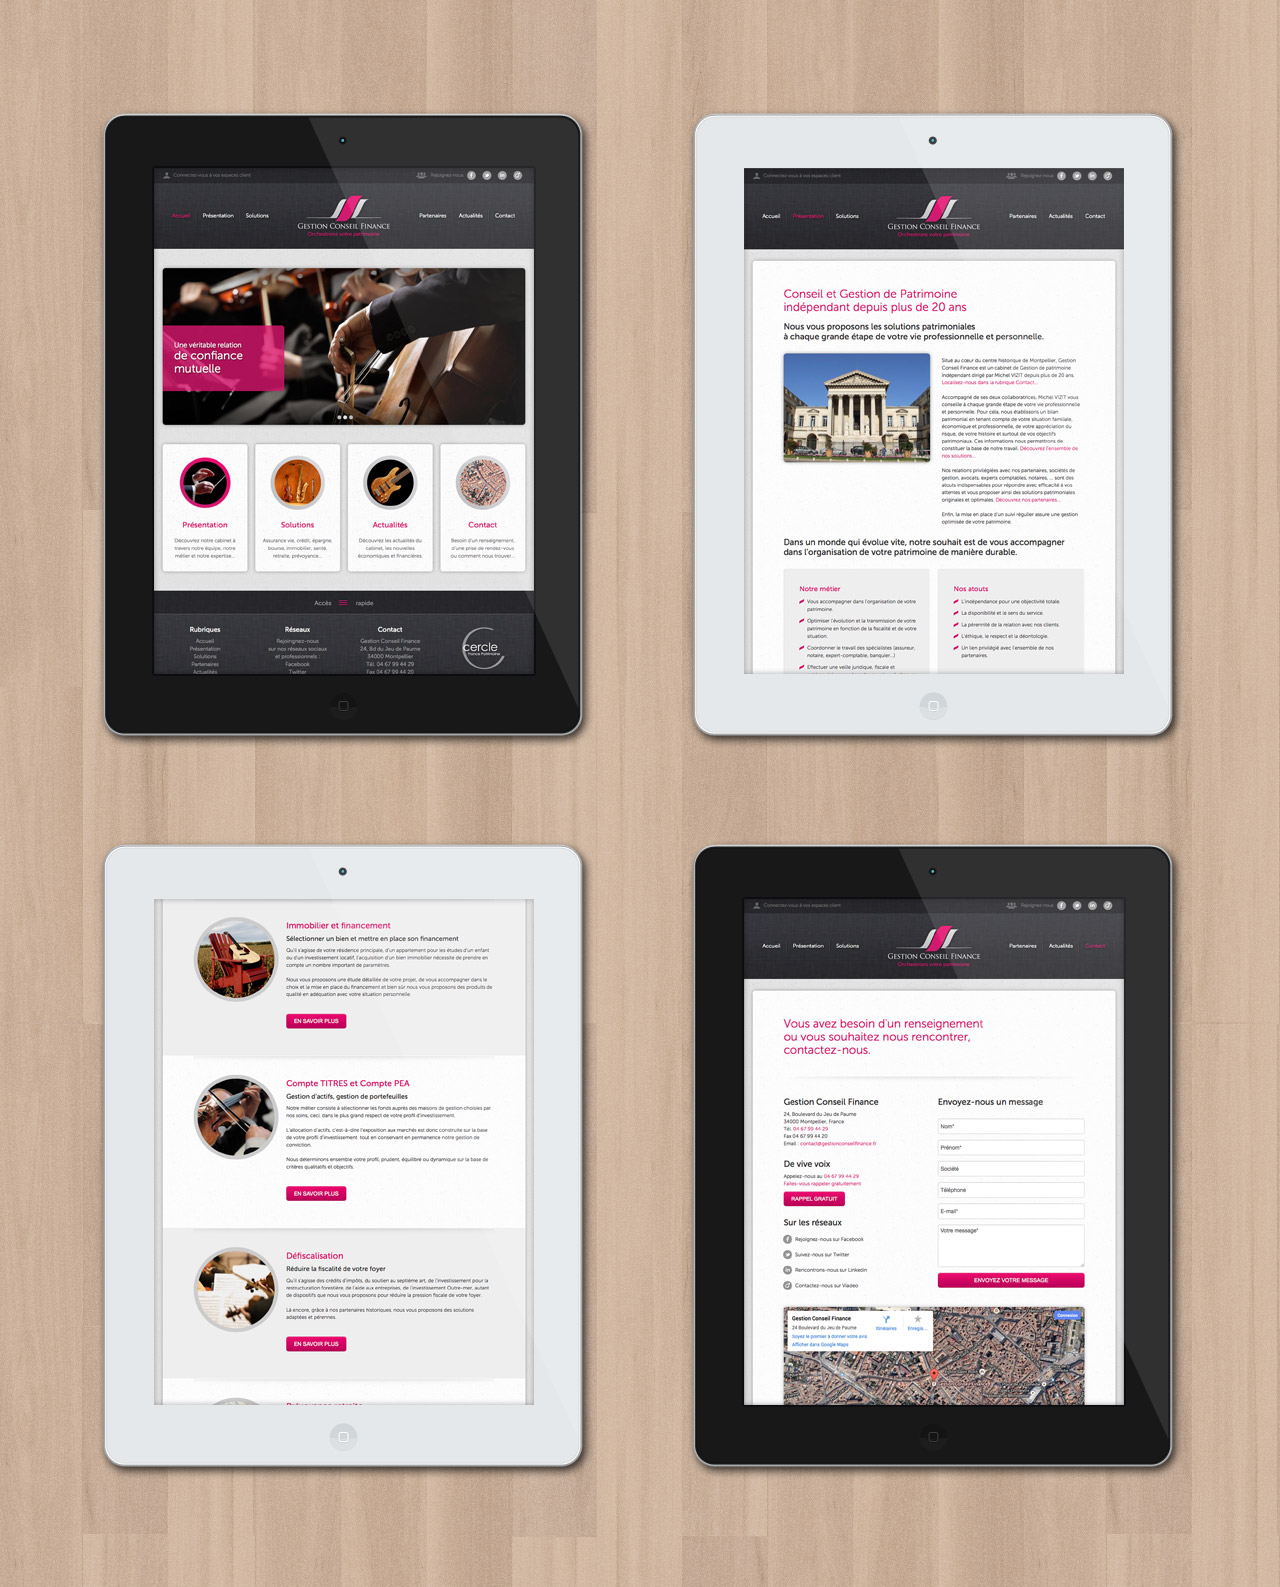 gestion-conseil-finance-site-tablette-responsive-design-creation-communication-caconcept-alexis-cretin-graphiste